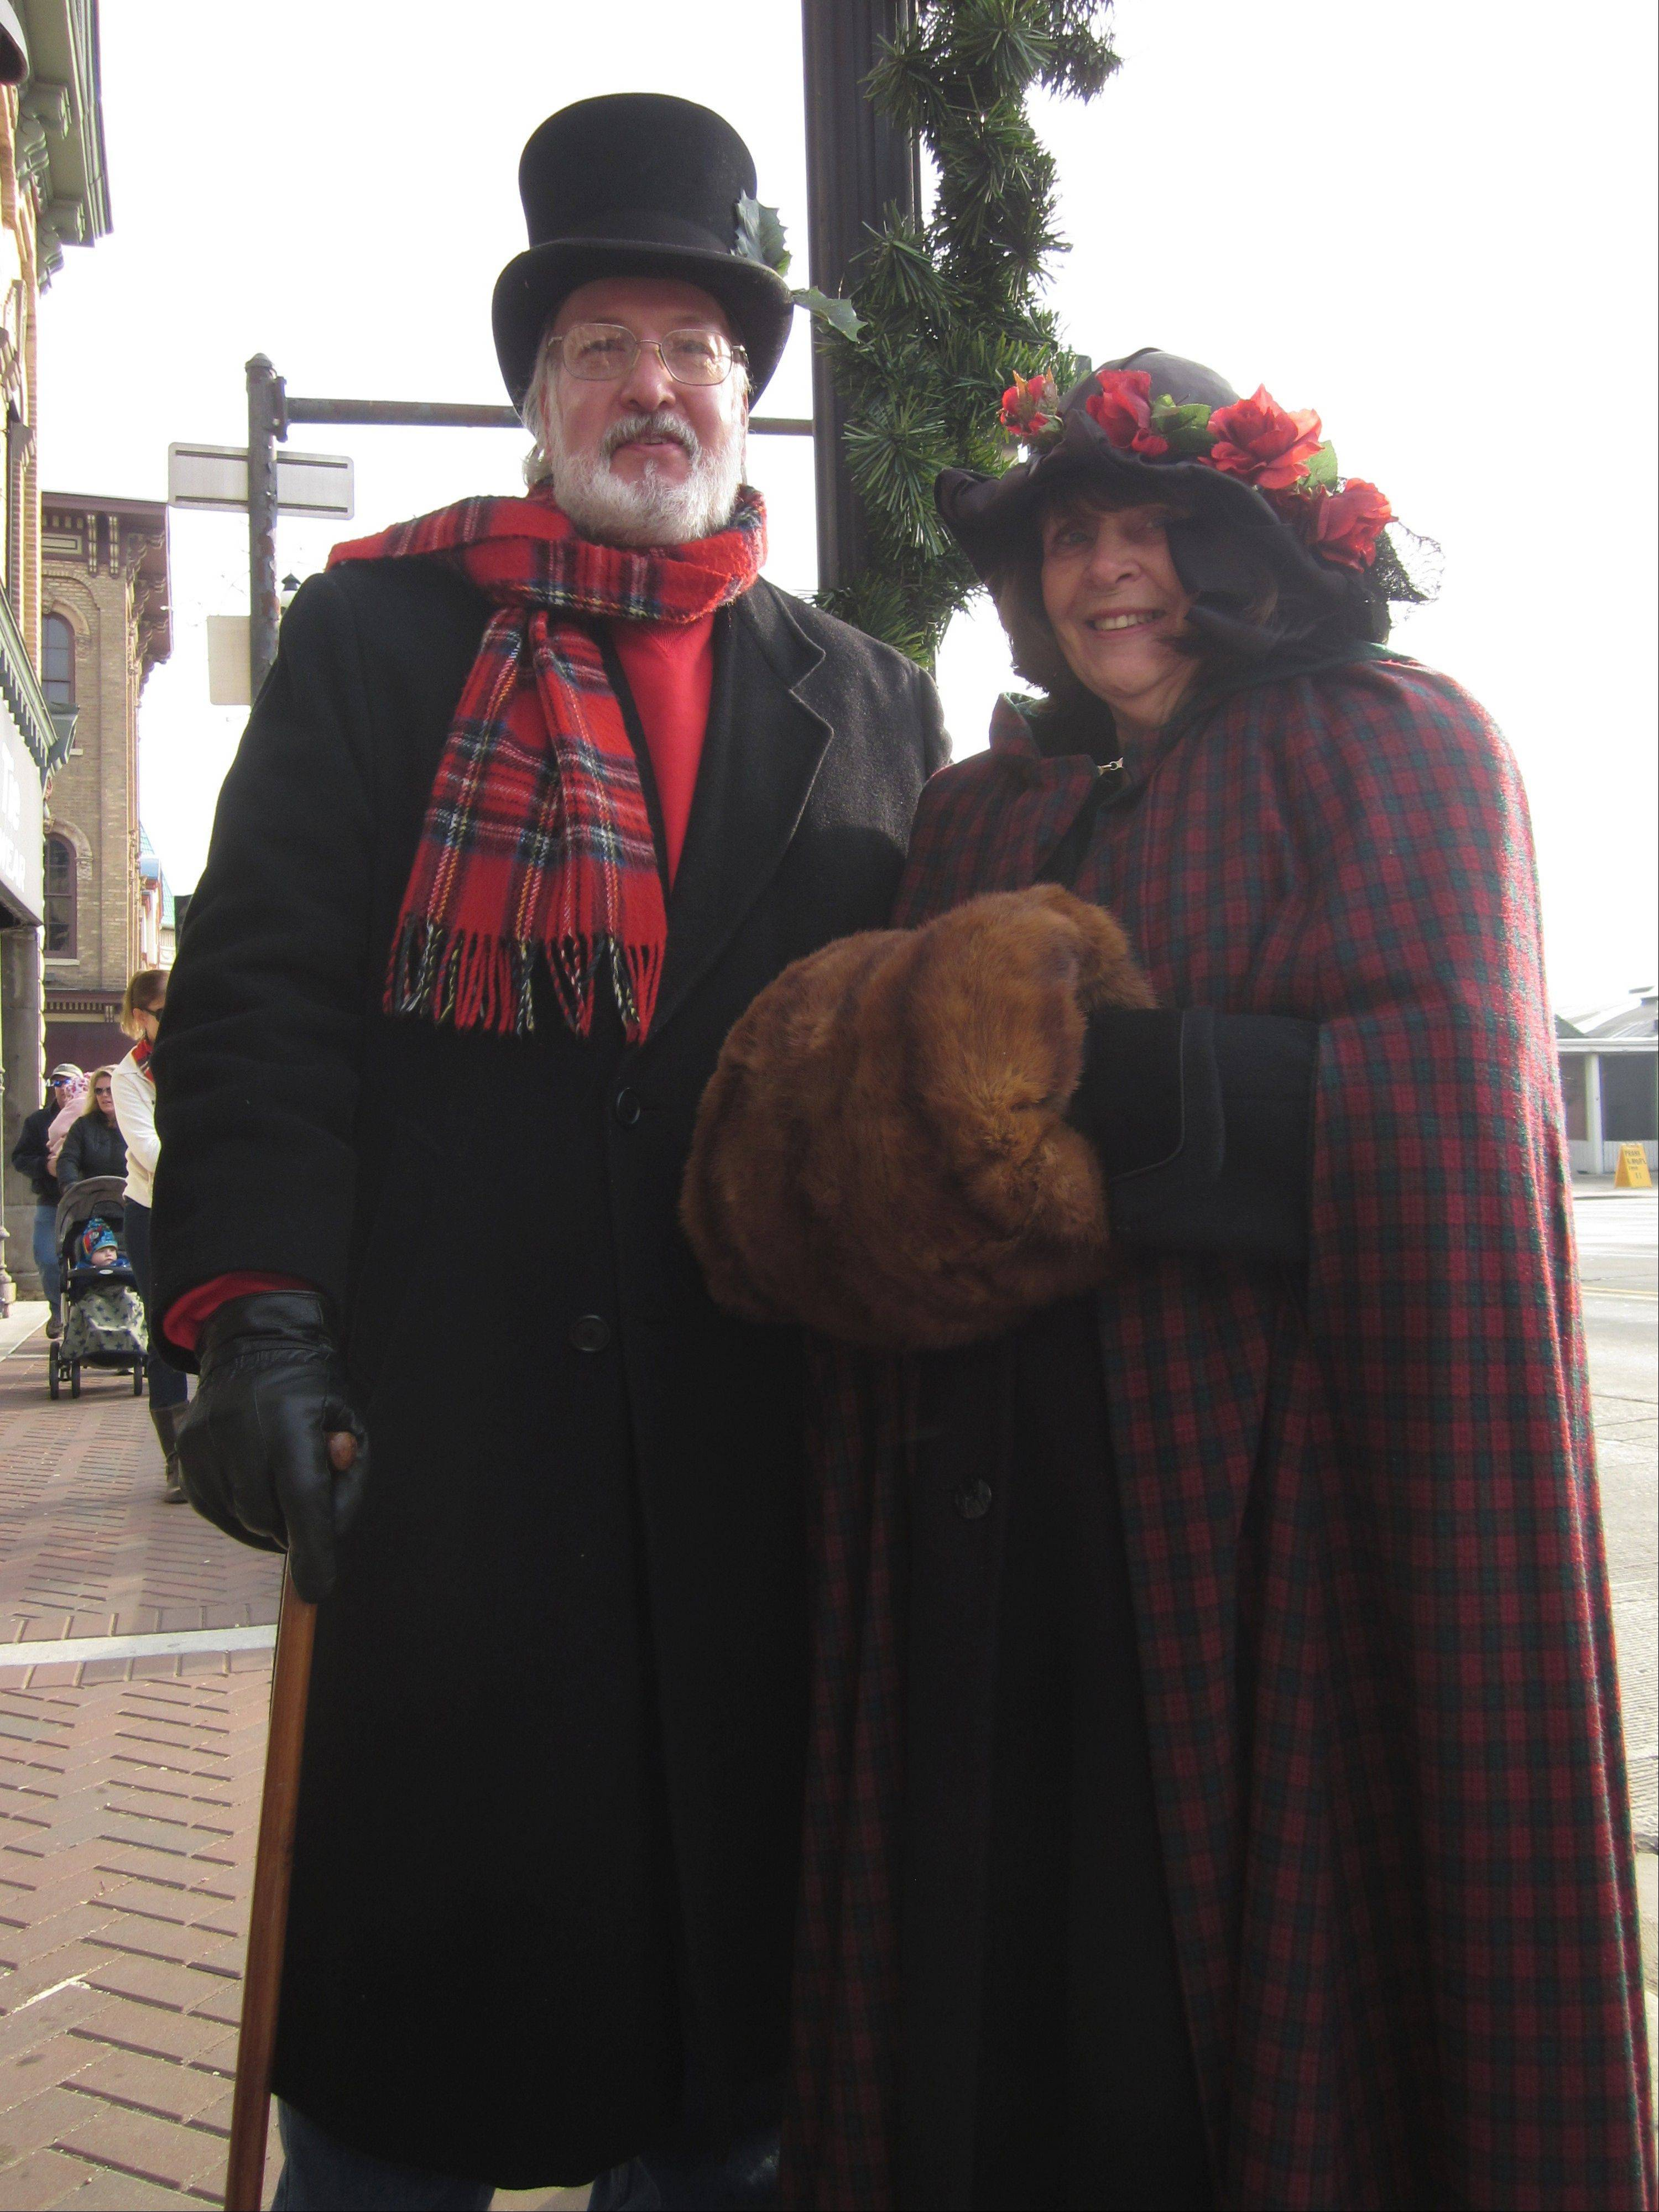 Mike and Ginny Buhrmann came dressed in period costumes for the annual Dickens in Dundee parade Saturday in West and East Dundee.